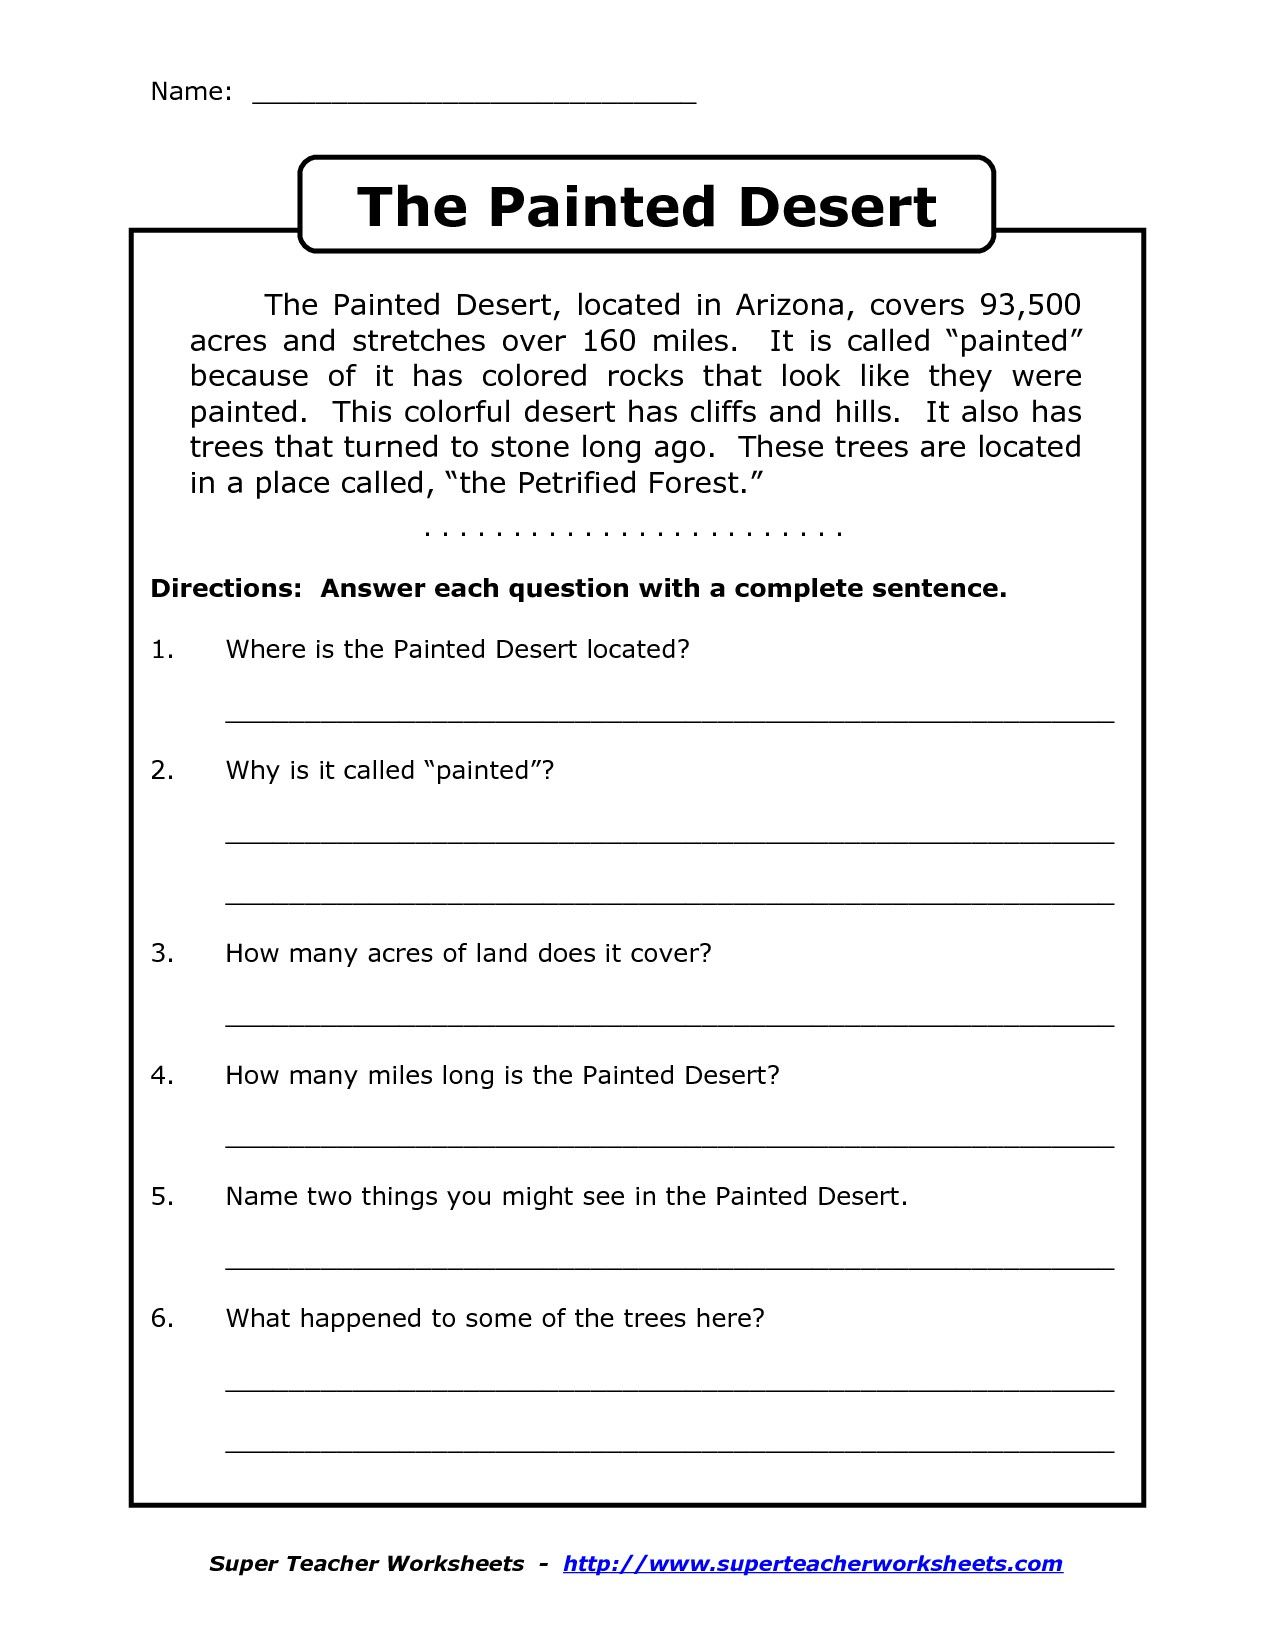 Worksheets Free 7th Grade Reading Comprehension Worksheets comprehension worksheet for 1st grade y2p3 the painted desert arizona dont forget to edit colored and colorful the